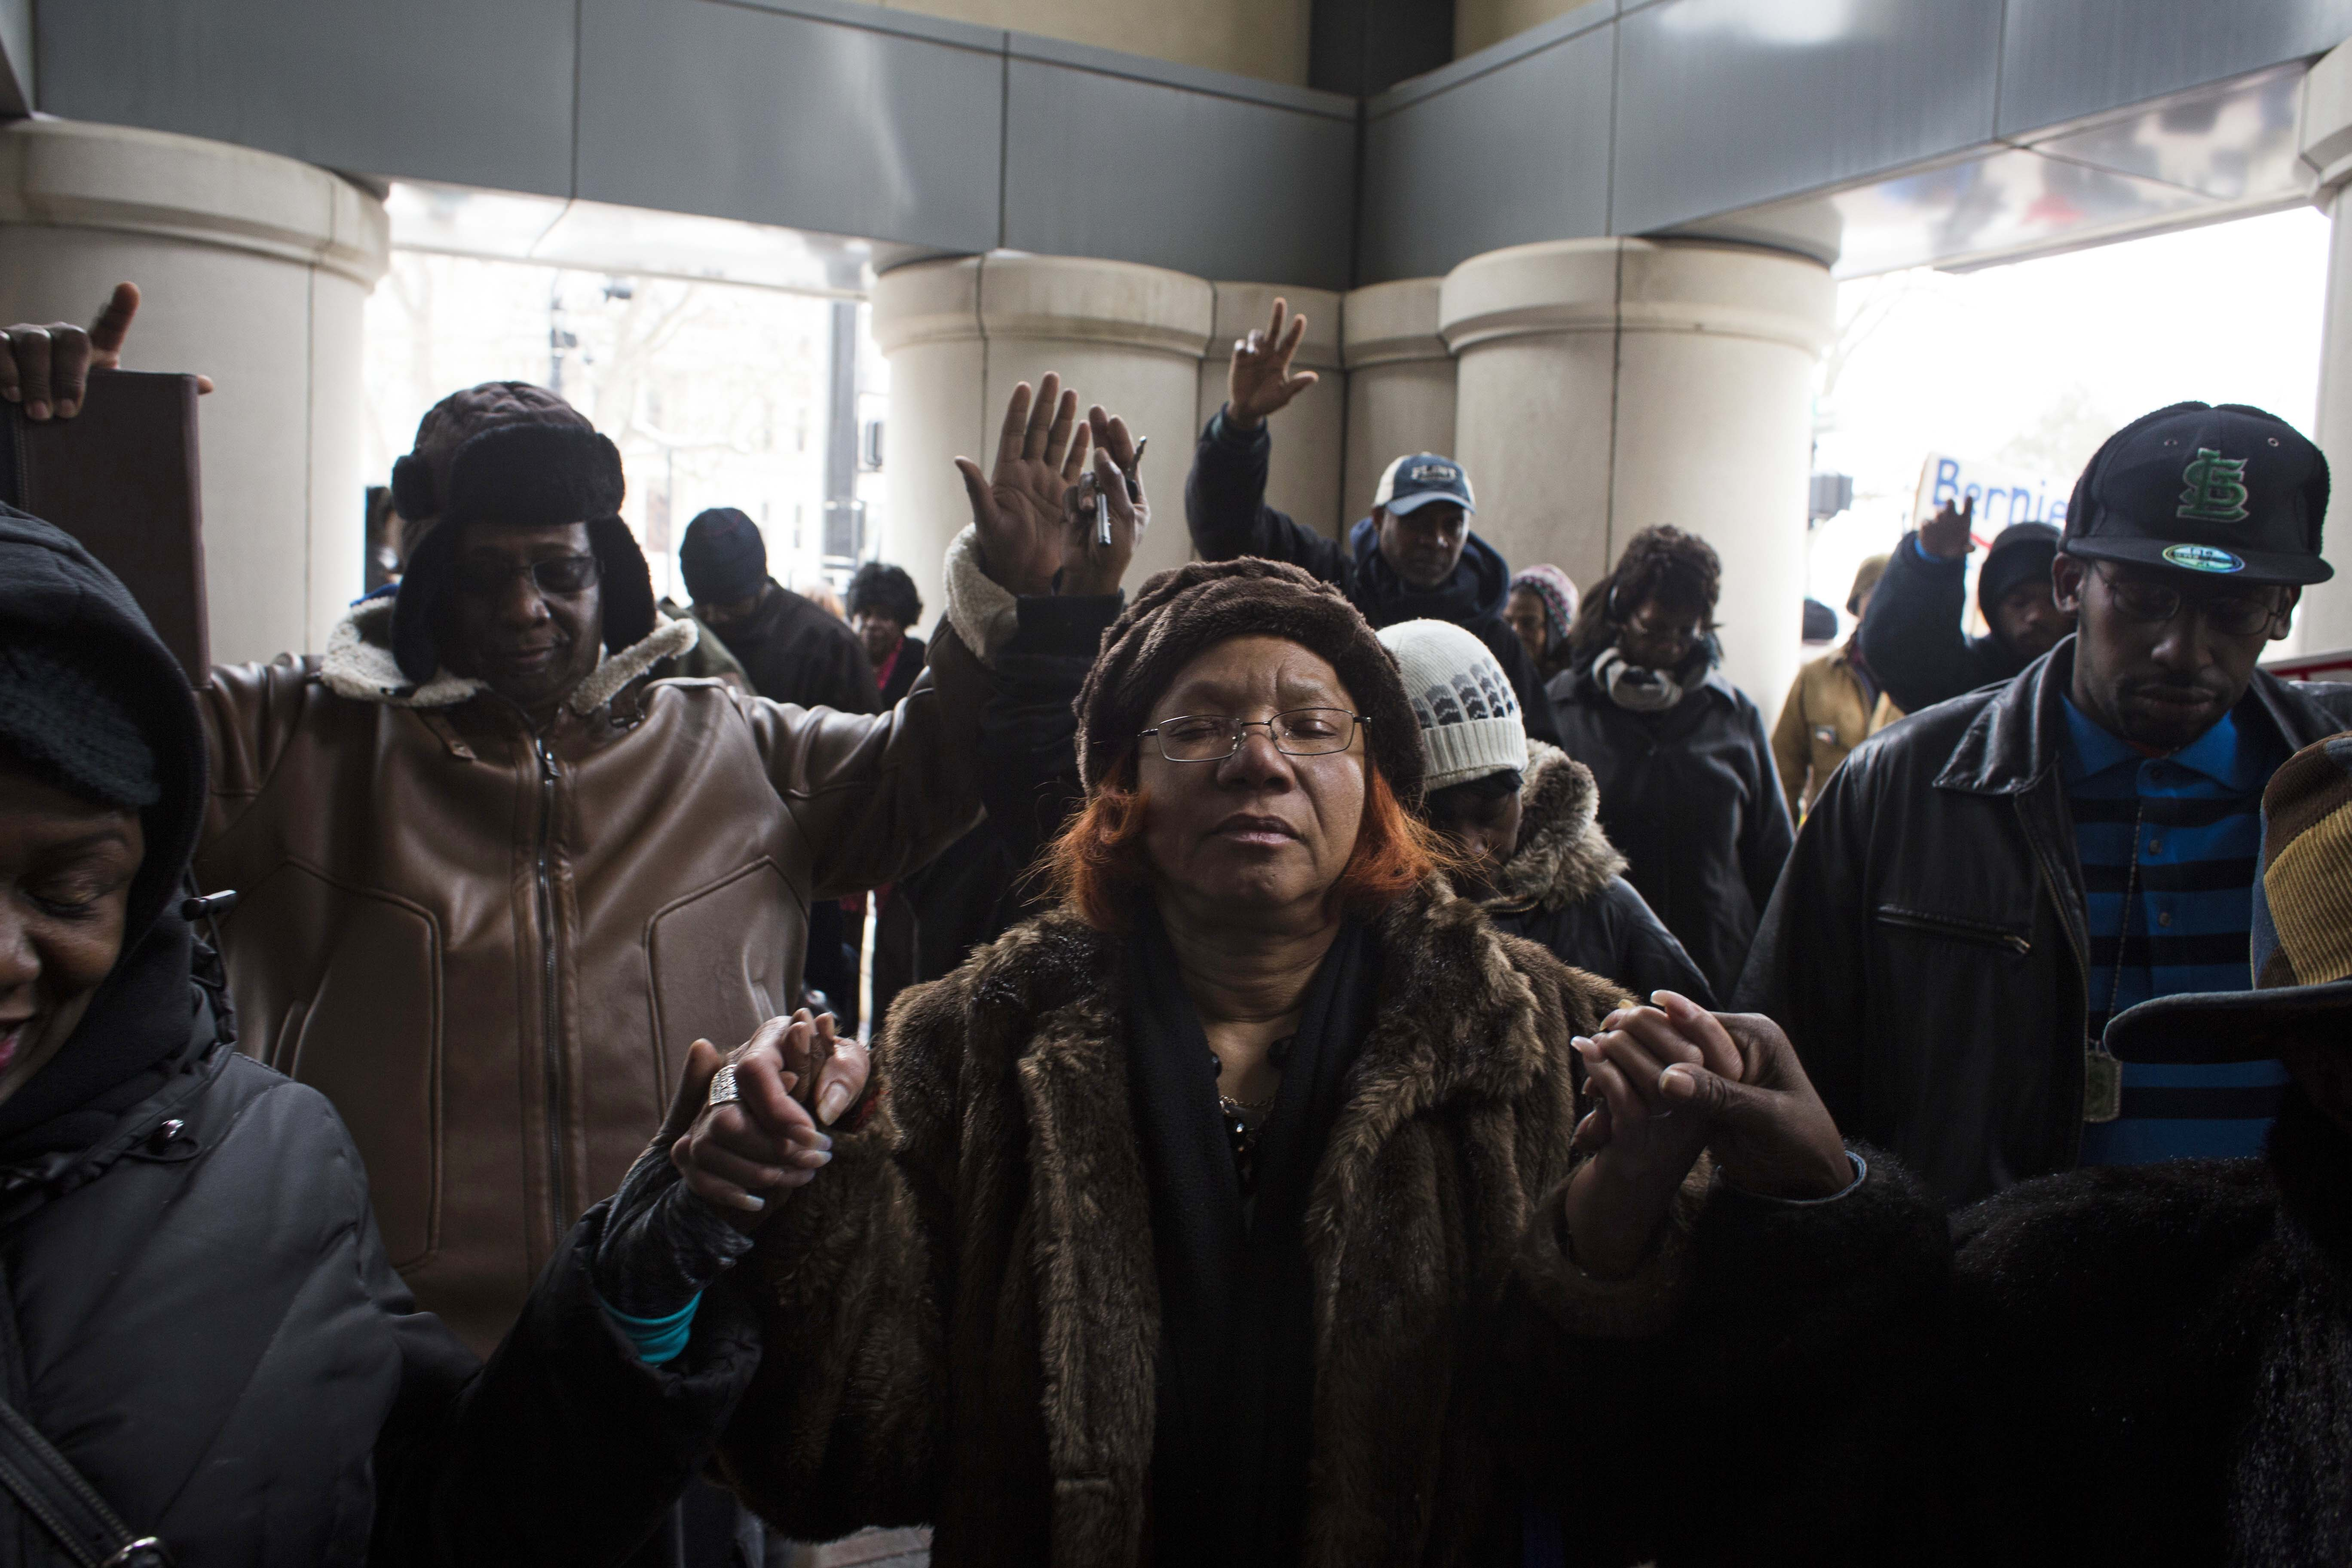 Earlene Love, 64, prays alongside her peers as protestors gather outside the Romney building, which houses the office of Governor Rick Snyder, on January 14, 2016. (Brittany Greeson/GroundTruth)